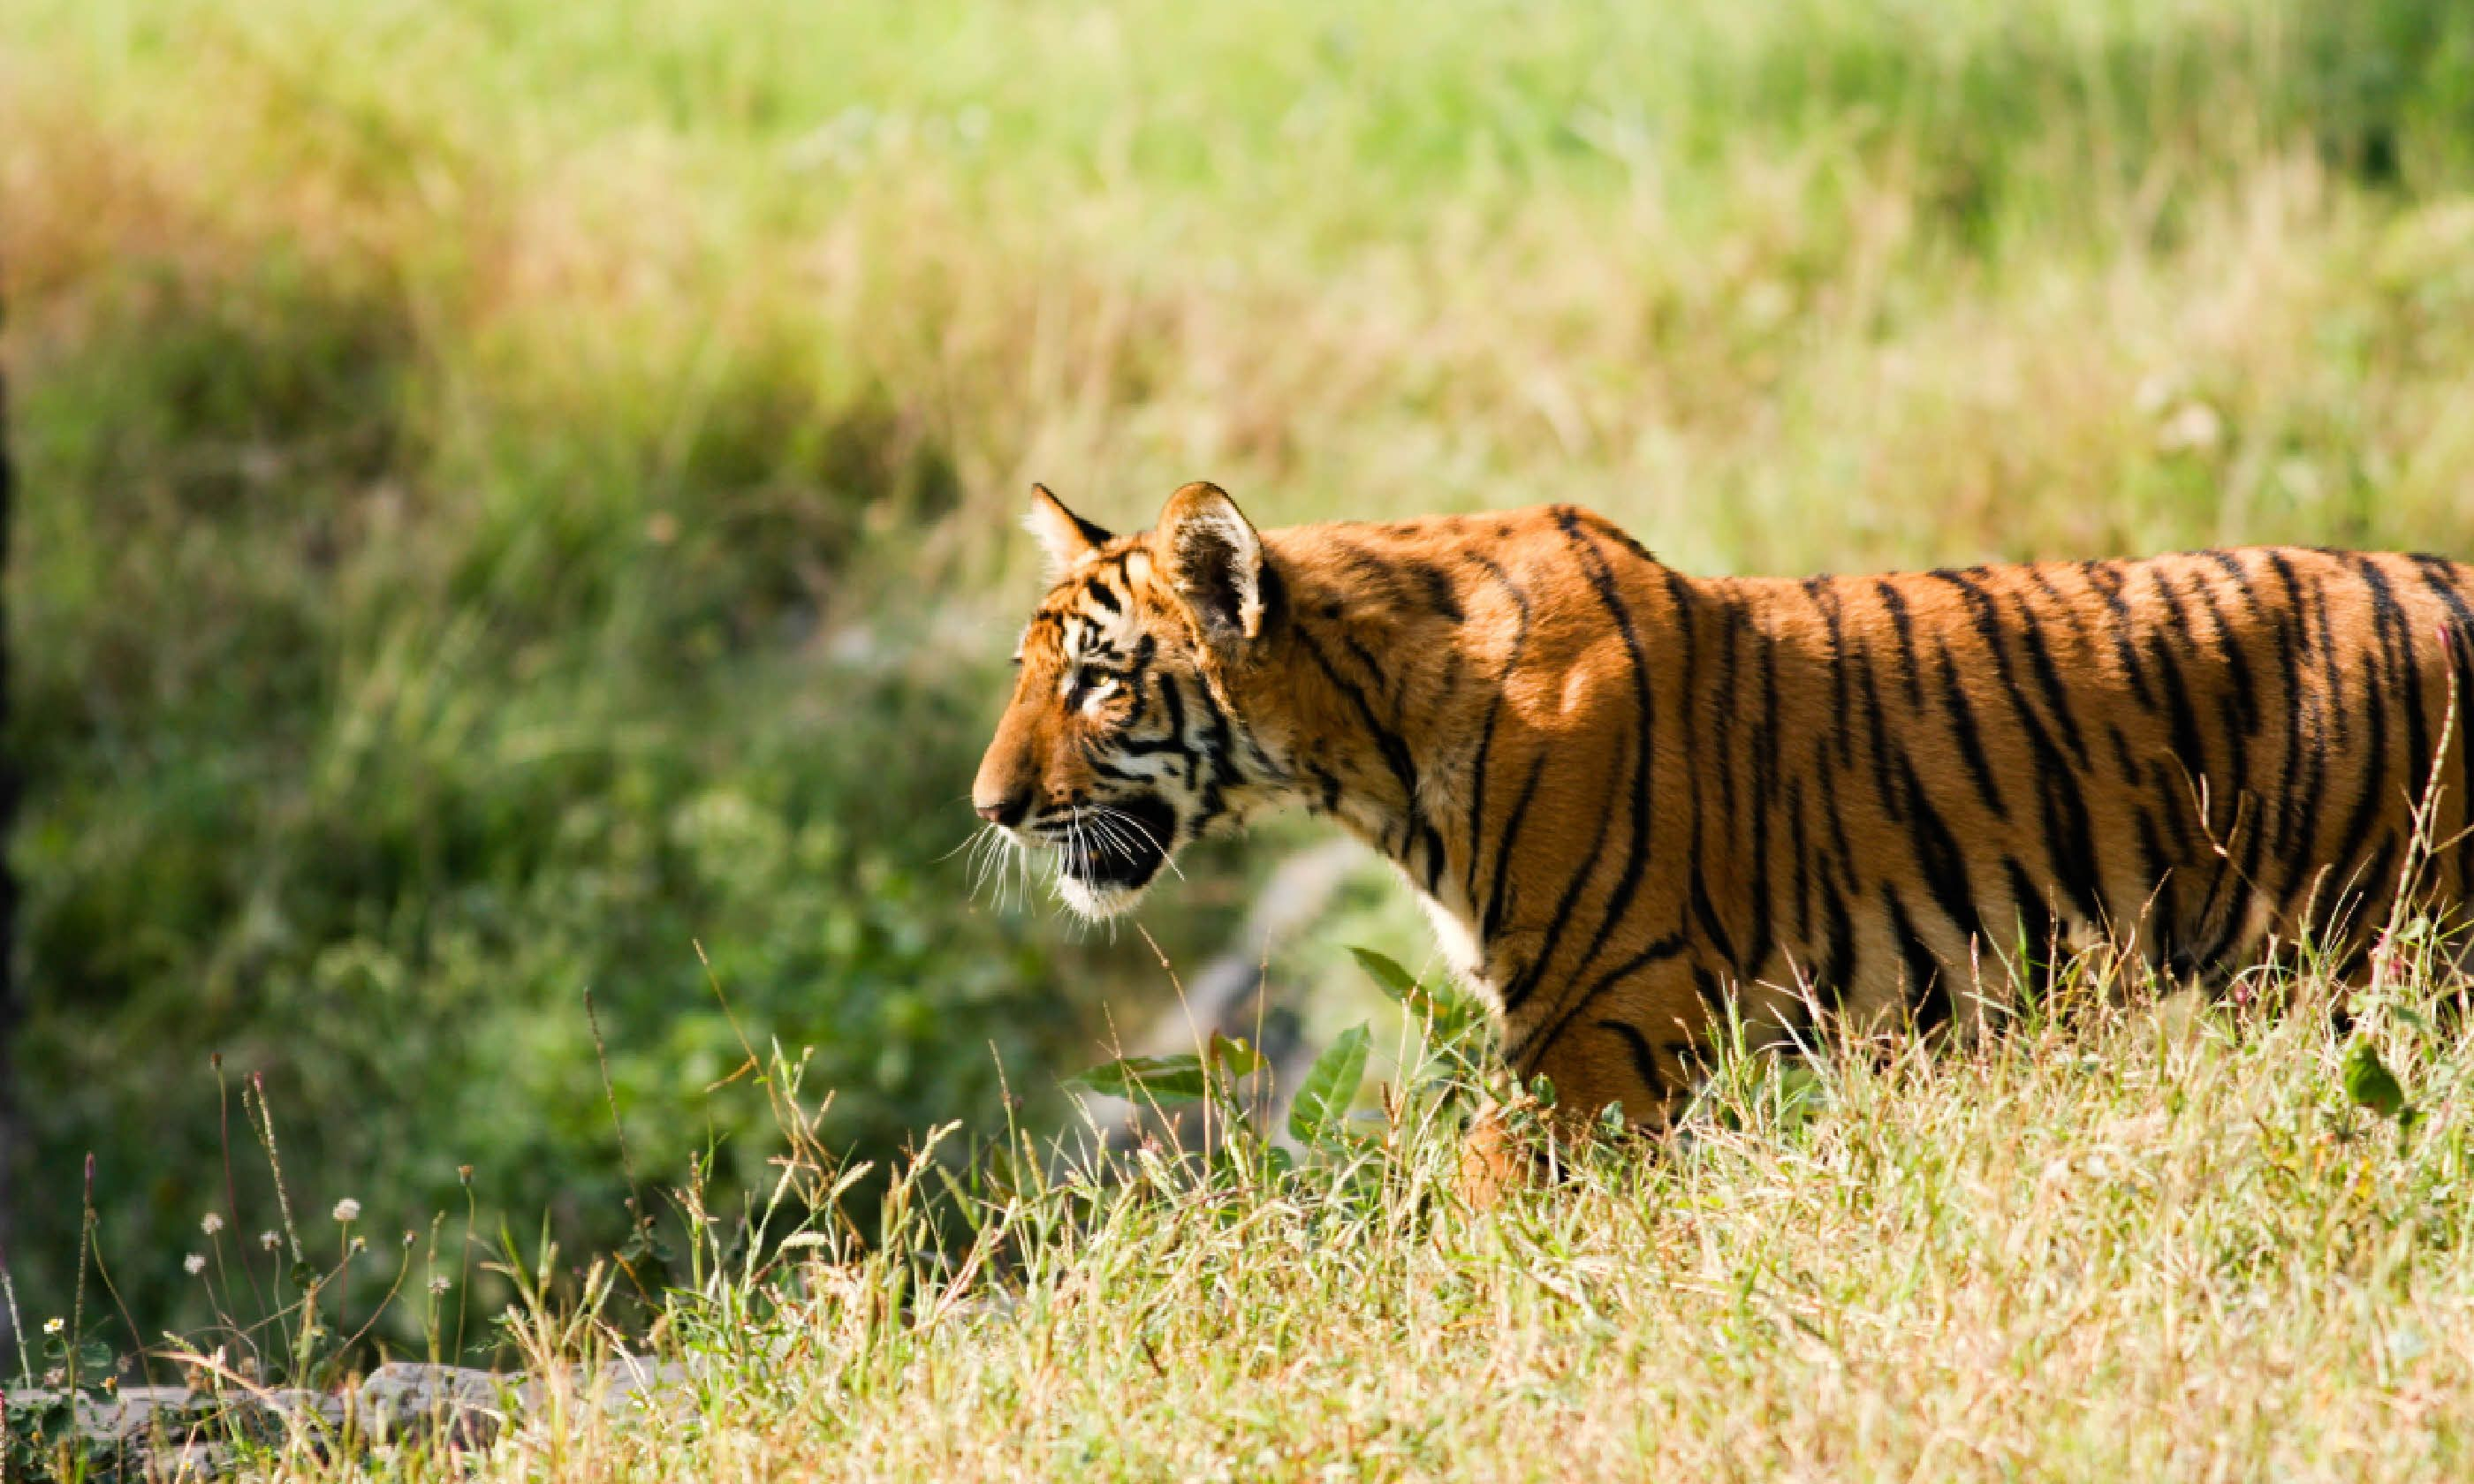 Tiger cub in the grass (Shutterstock)